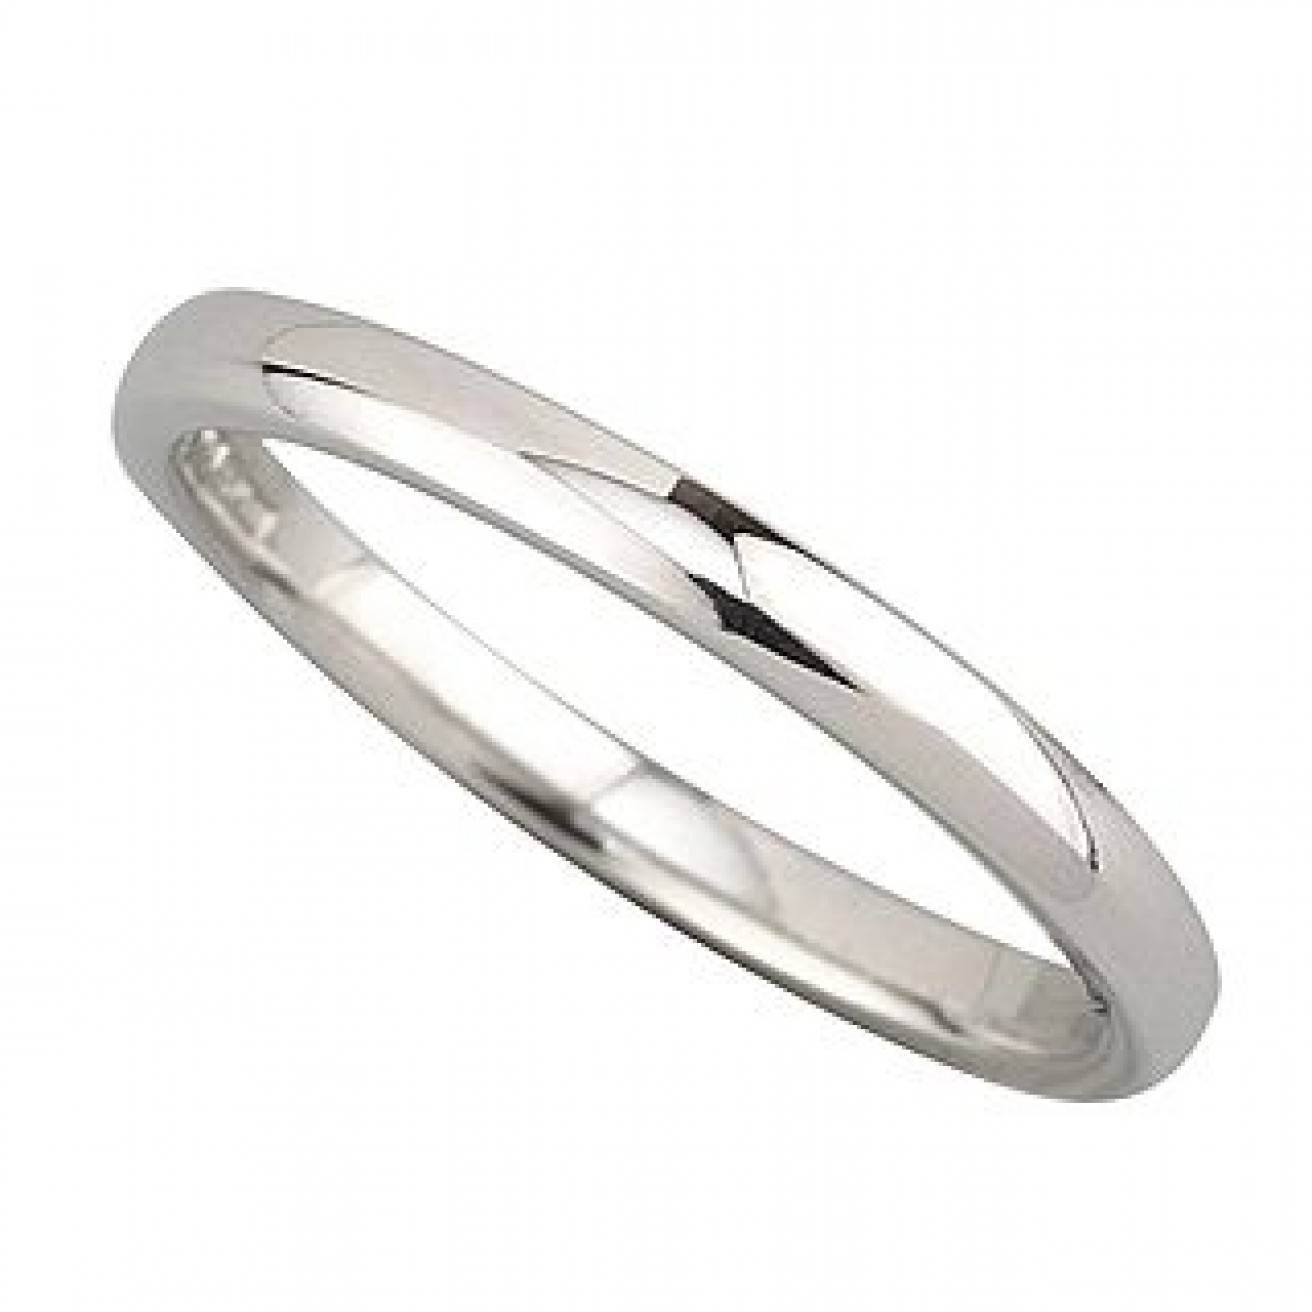 Buy Platinum Wedding Bands Online – Fraser Hart Within Most Up To Date Platnium Wedding Bands (View 6 of 15)